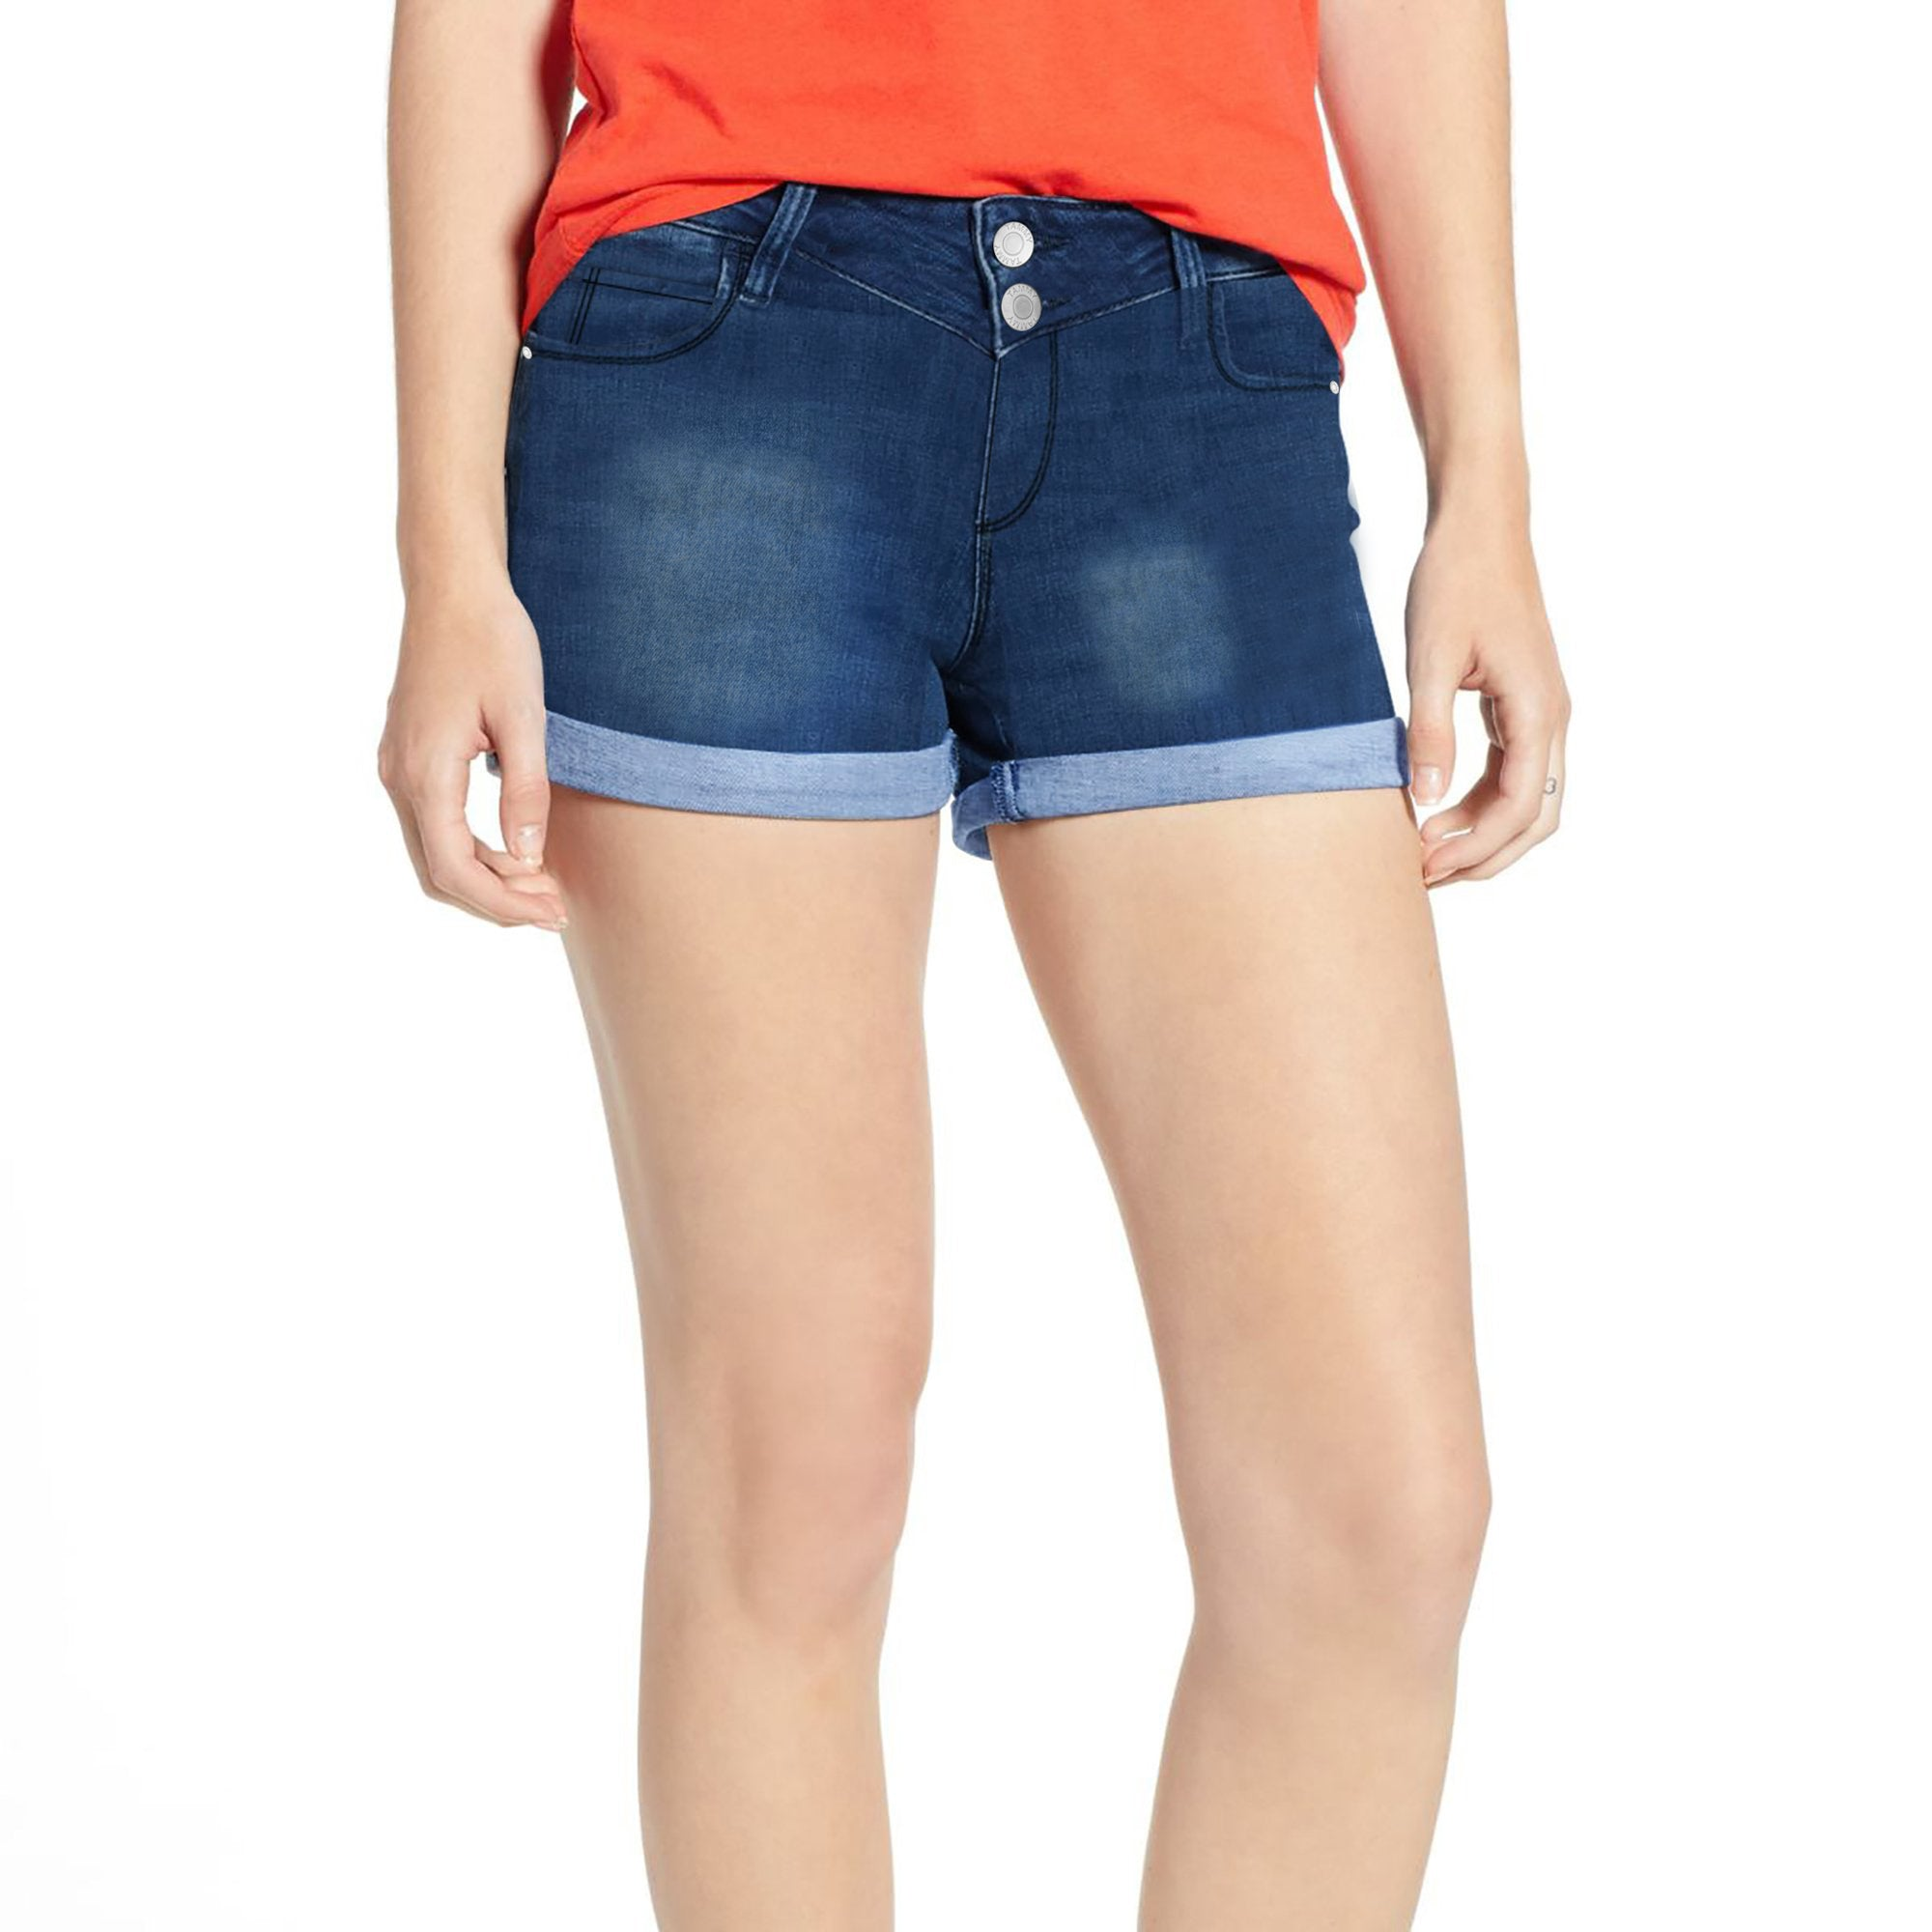 Tammy Girl Denim Short For Ladies-Dirty Wash -SP111